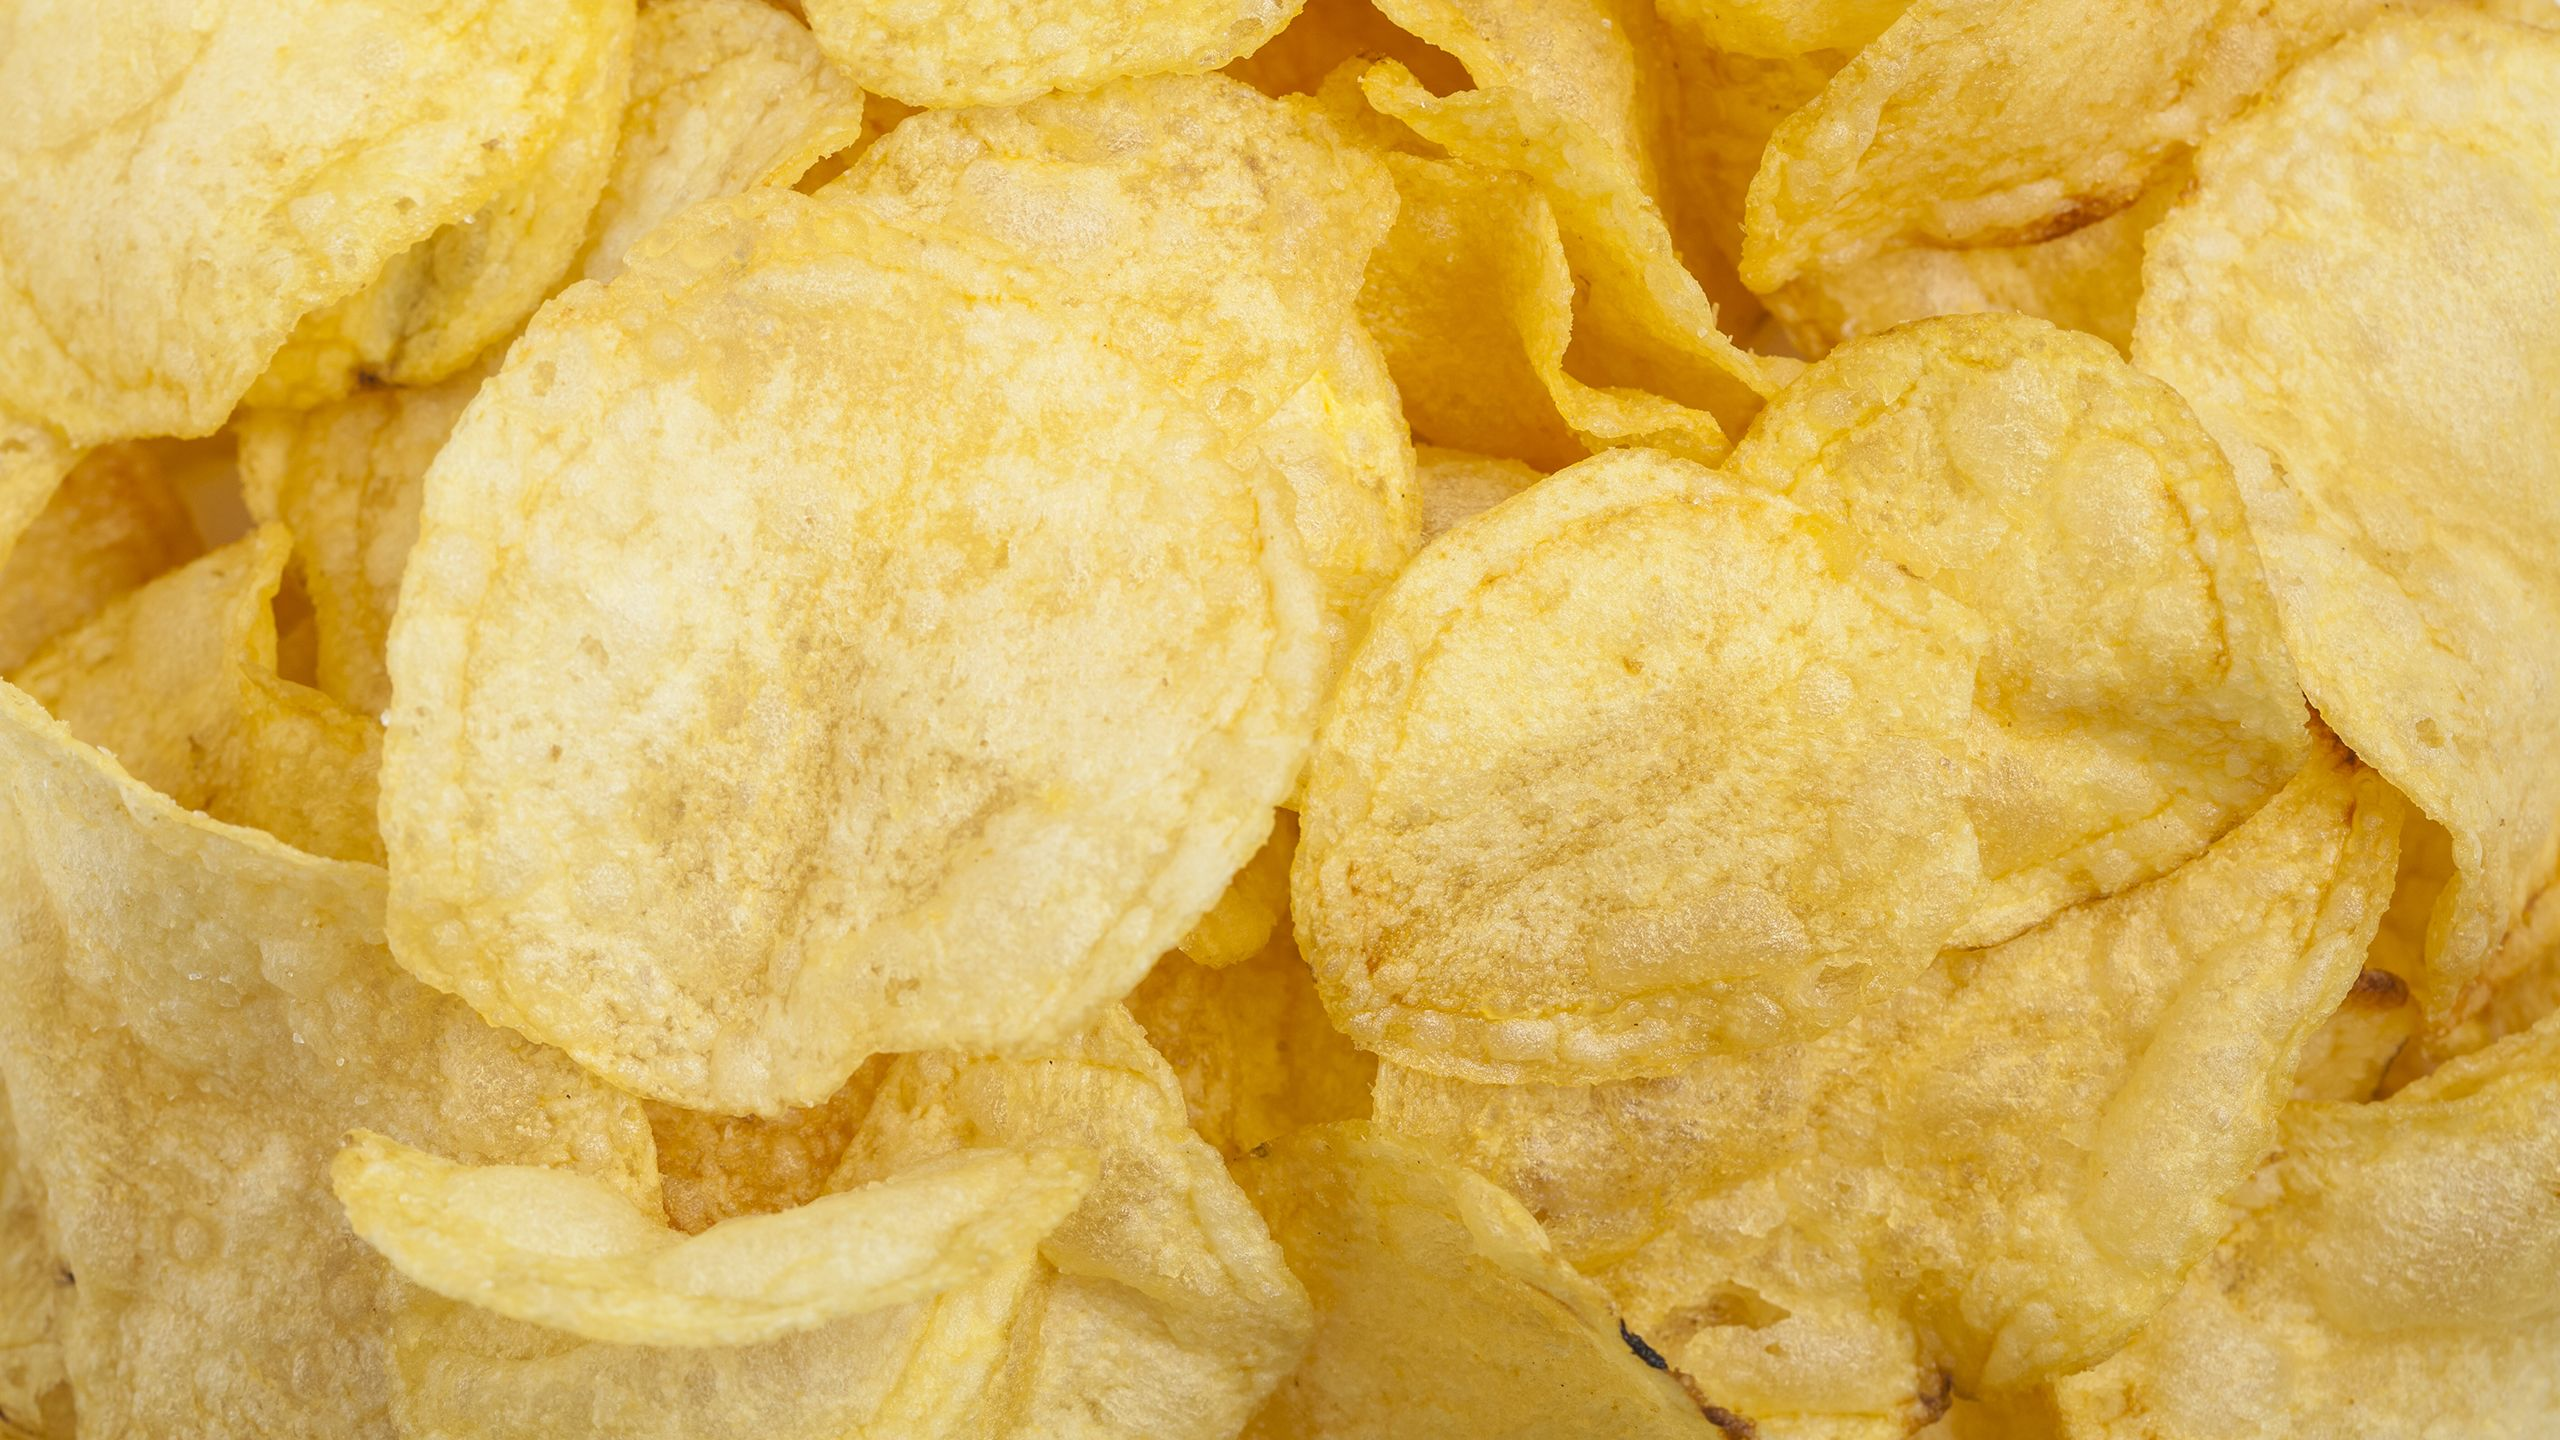 Trans Fats From Foods May Worsen Memory Trans Fats From Foods May Worsen Memory new photo